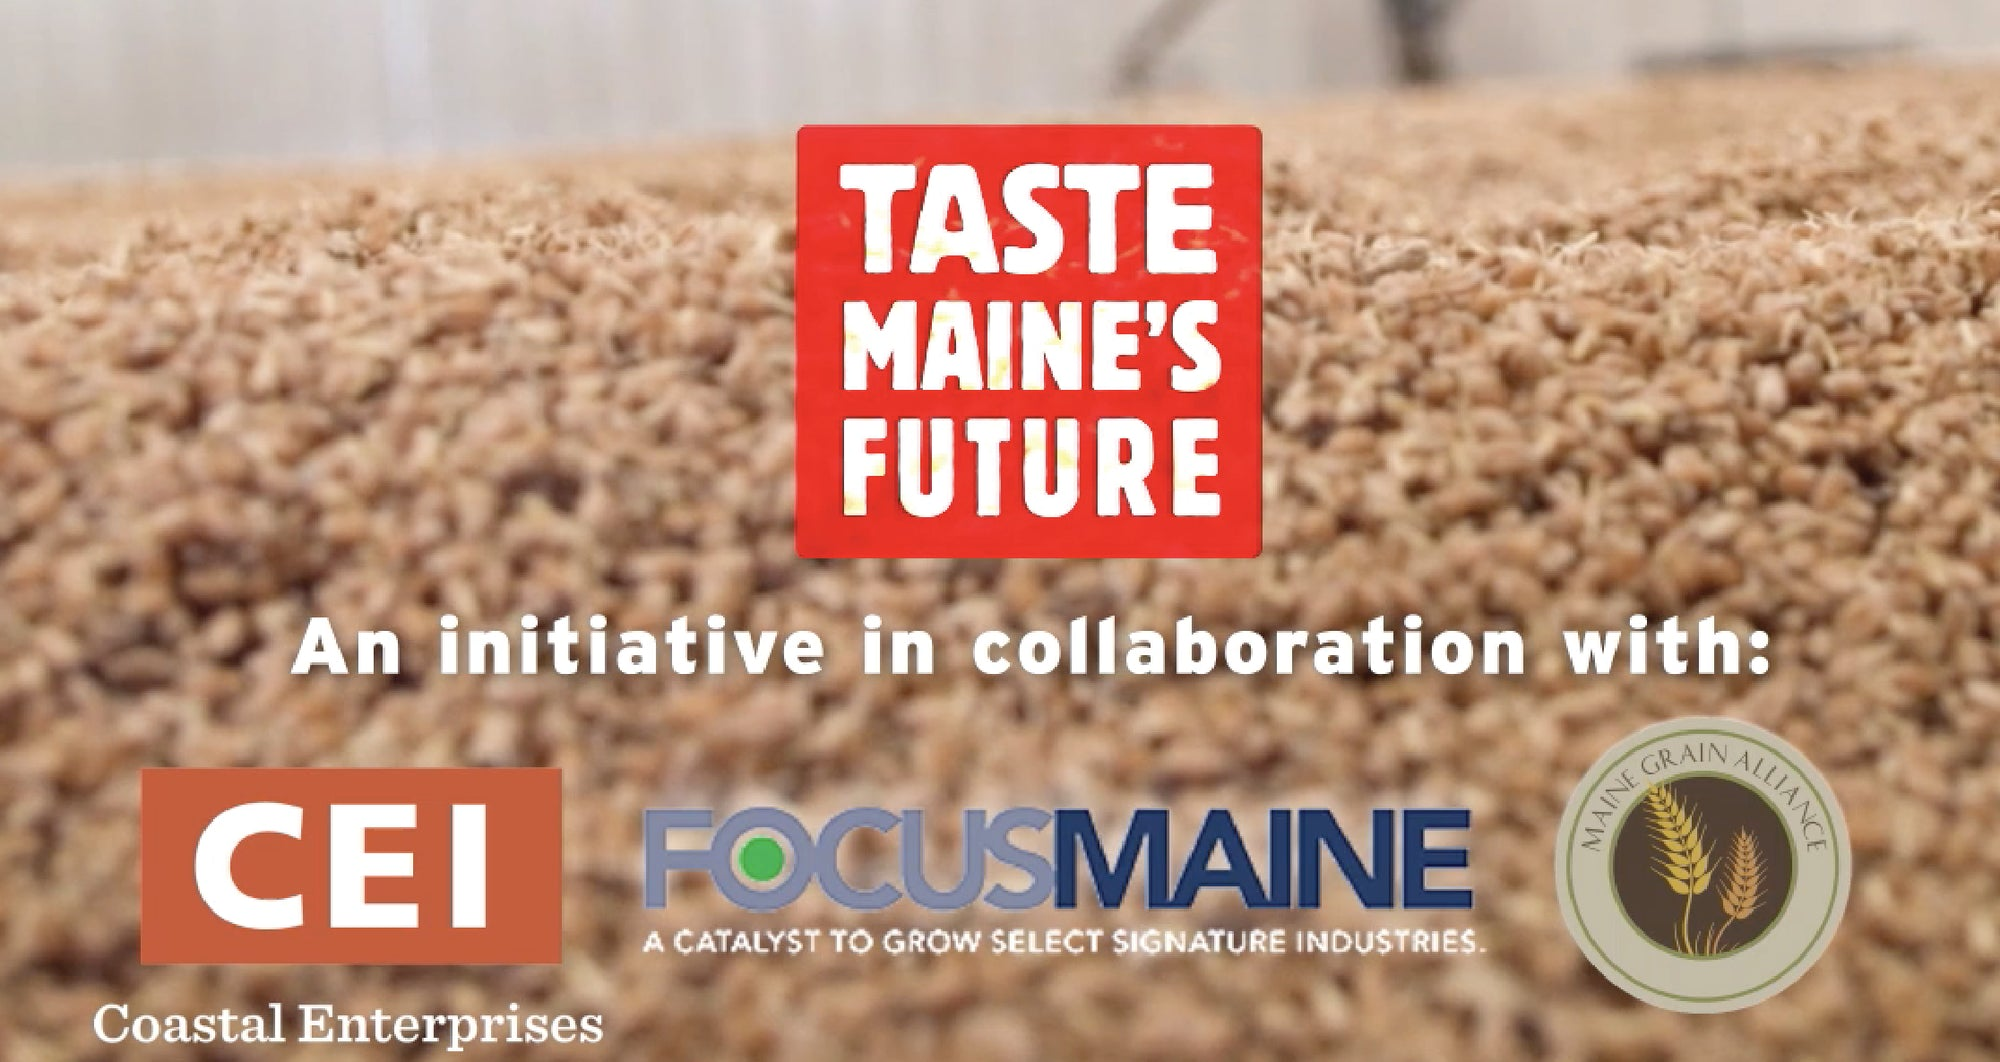 CEI/Focus Maine Tastemakers Investor Tour Kicks Off At Maine Crisp